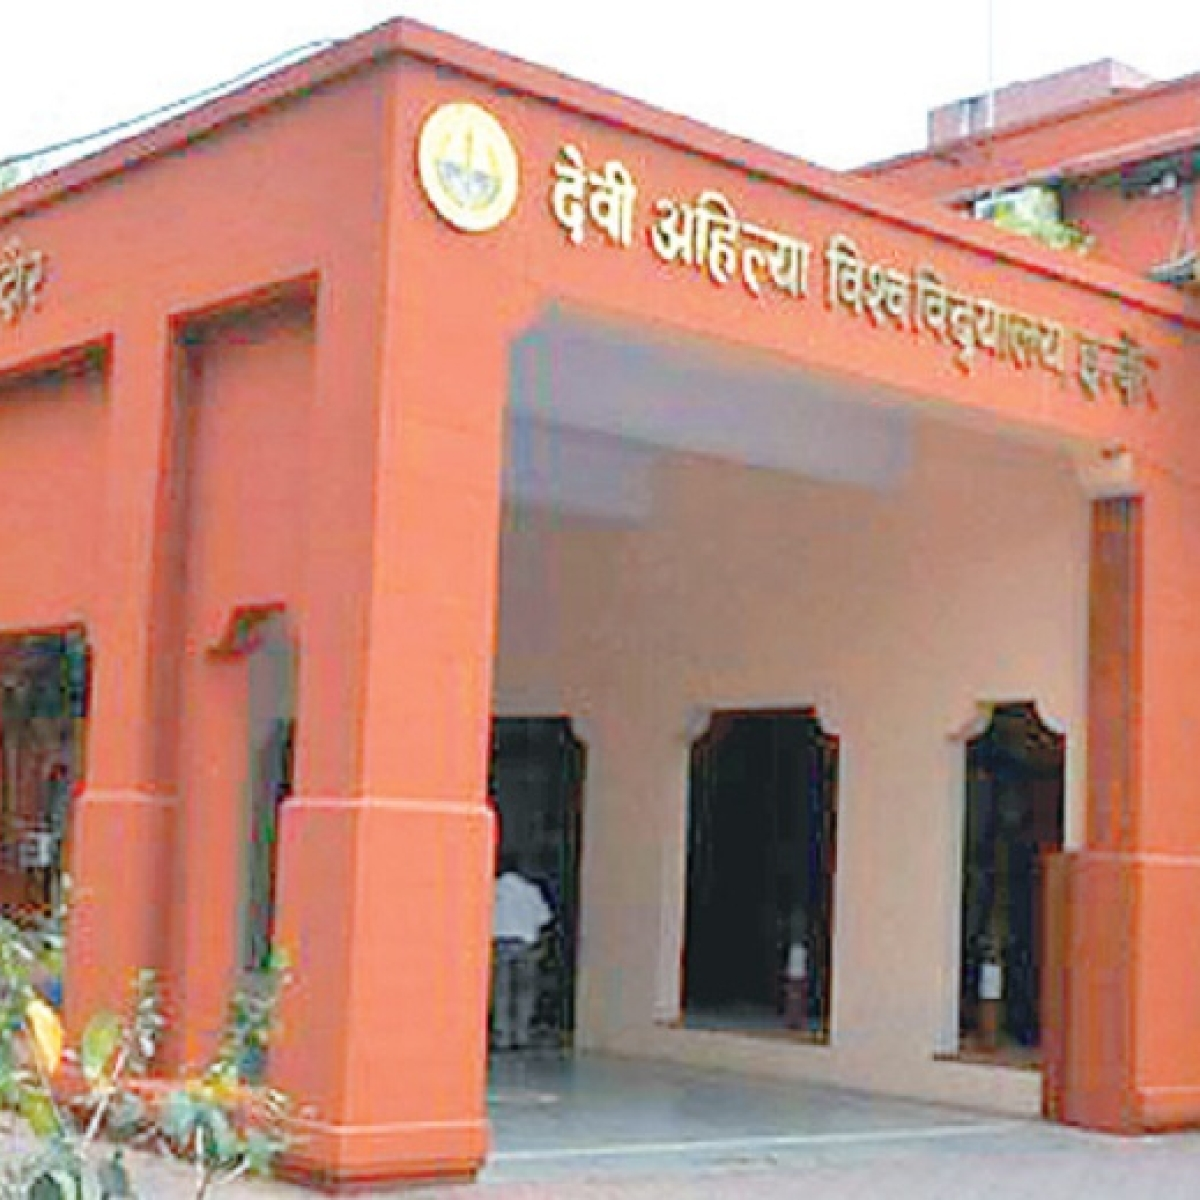 Indore: DAVV keeps fingers crossed as NAAC team arrives for inspection